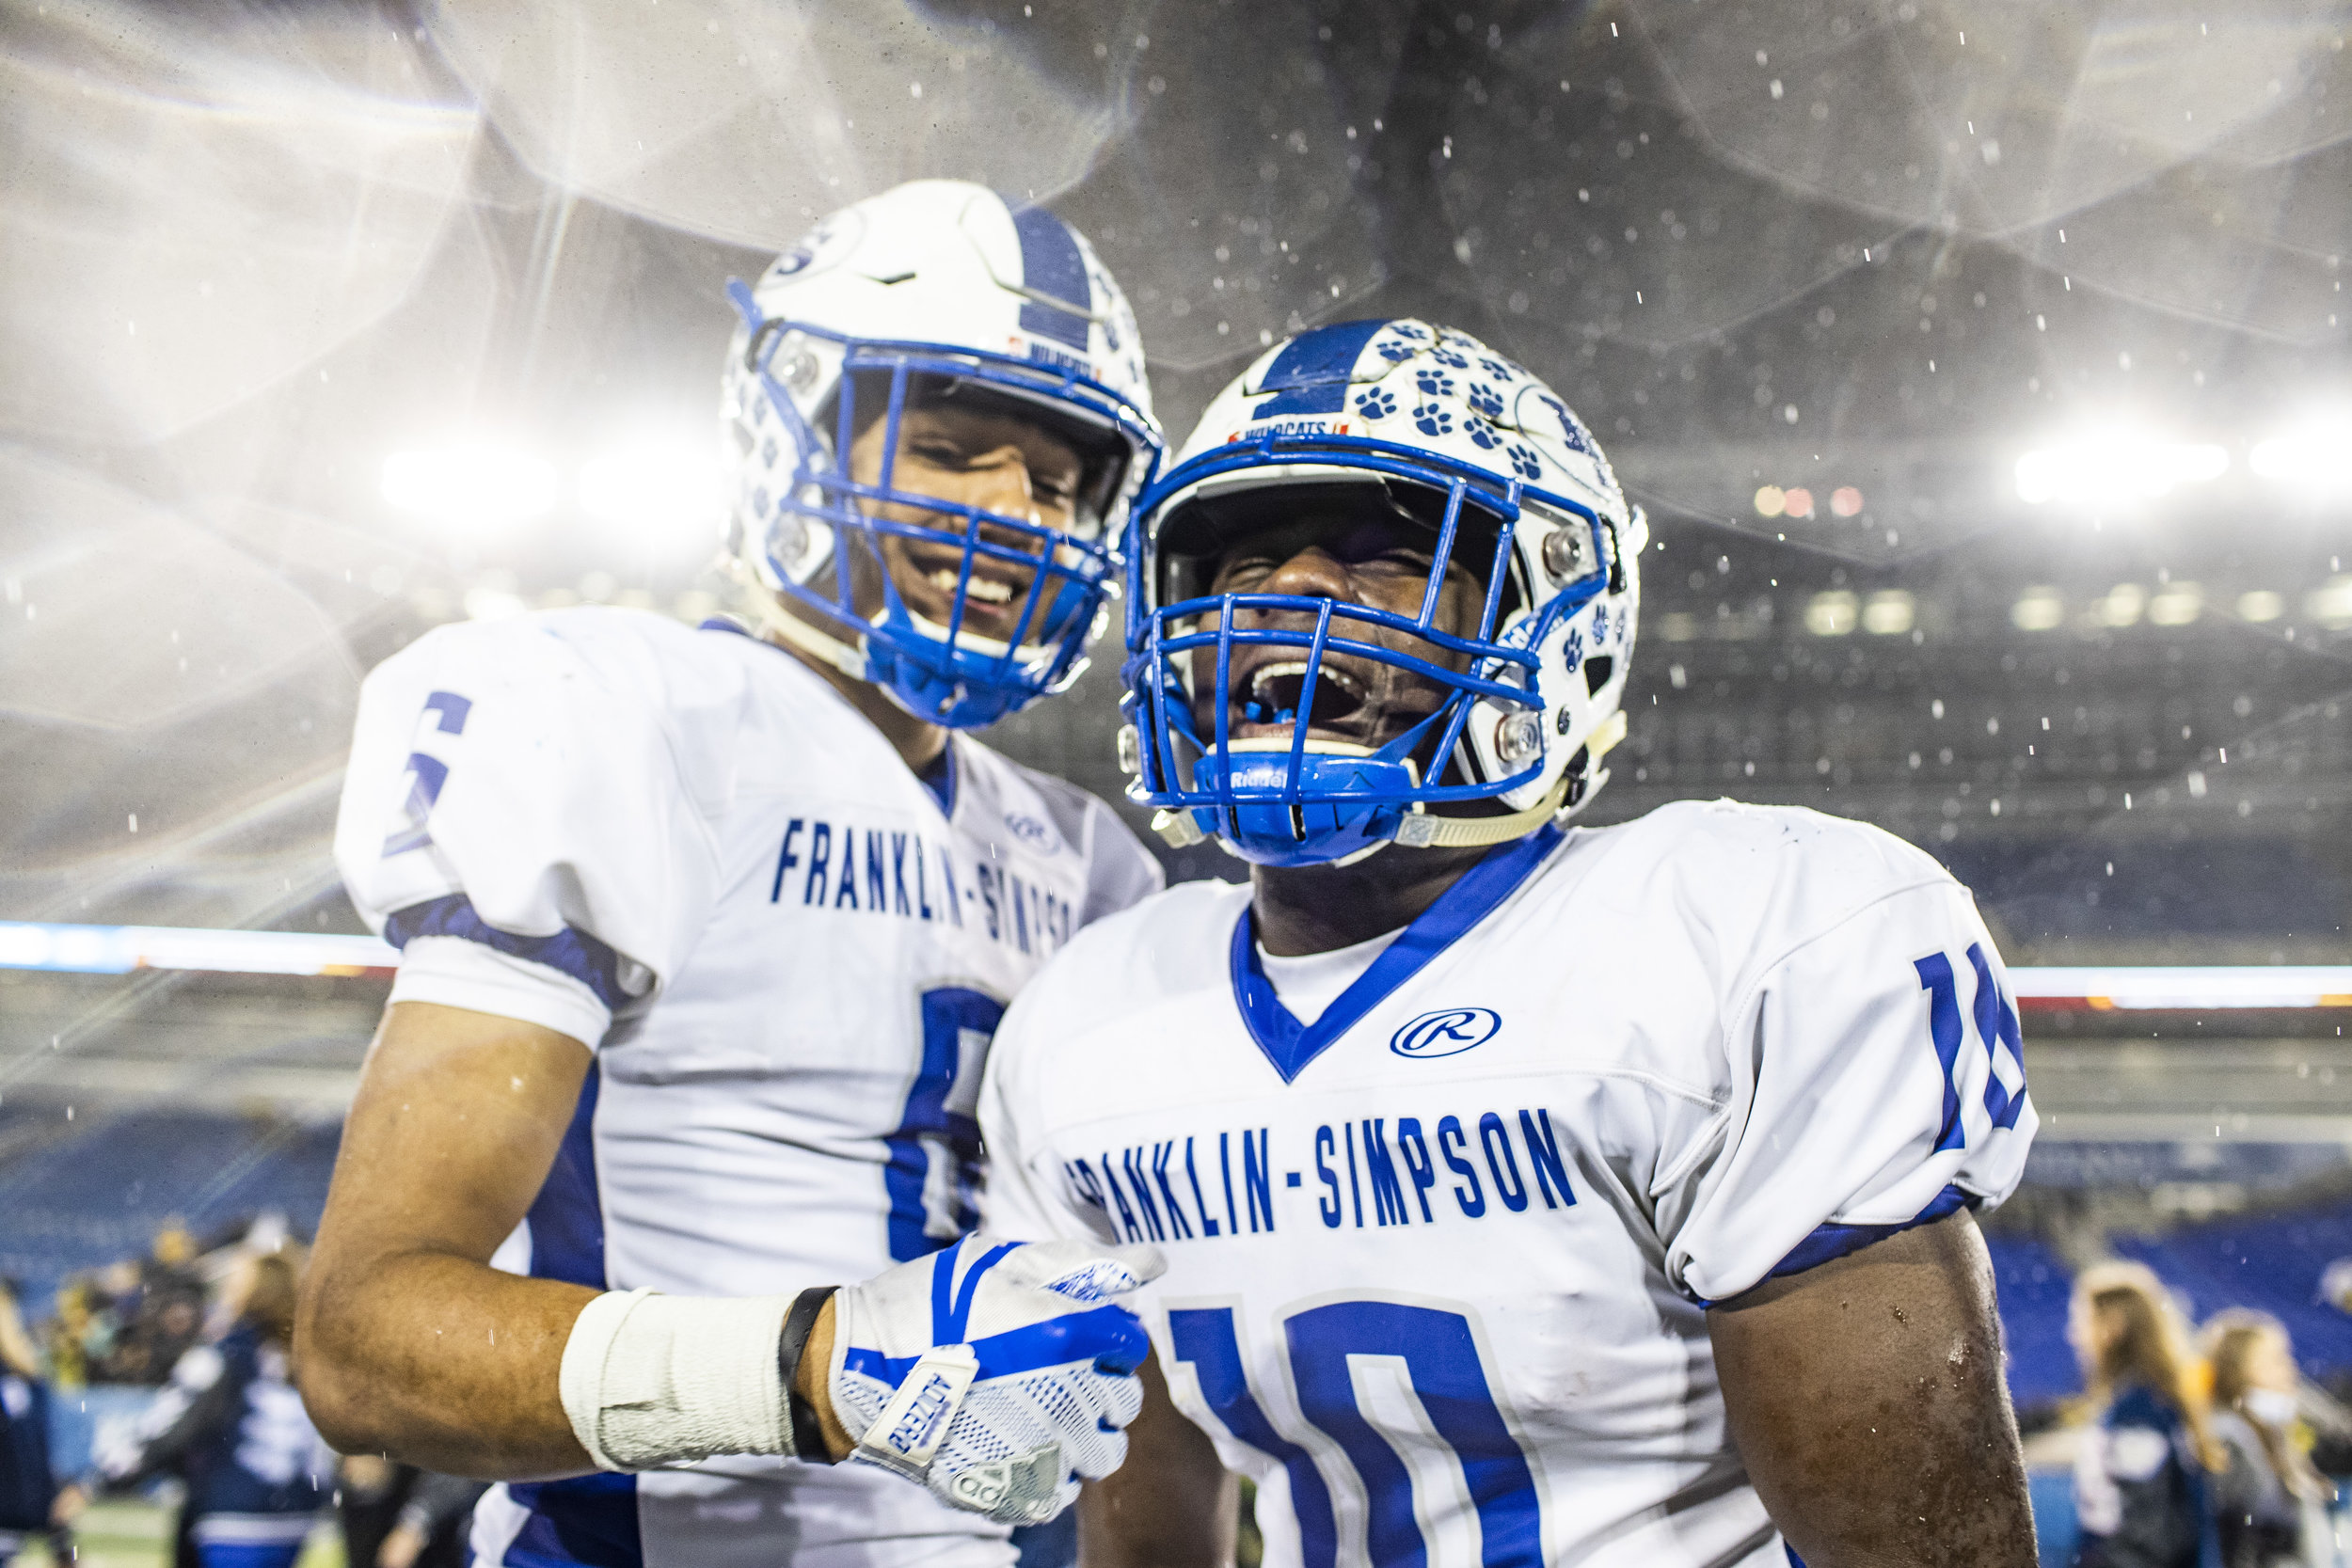 Franklin-Simpson's Leandre Stutzman, left, and Tre Bass celebrate after Franklin-Simpson's 14-12 win over Johnson Central in the Class 4A State Championship on Saturday, December 1, 2018, at Kroger Field in Lexington, Ky.